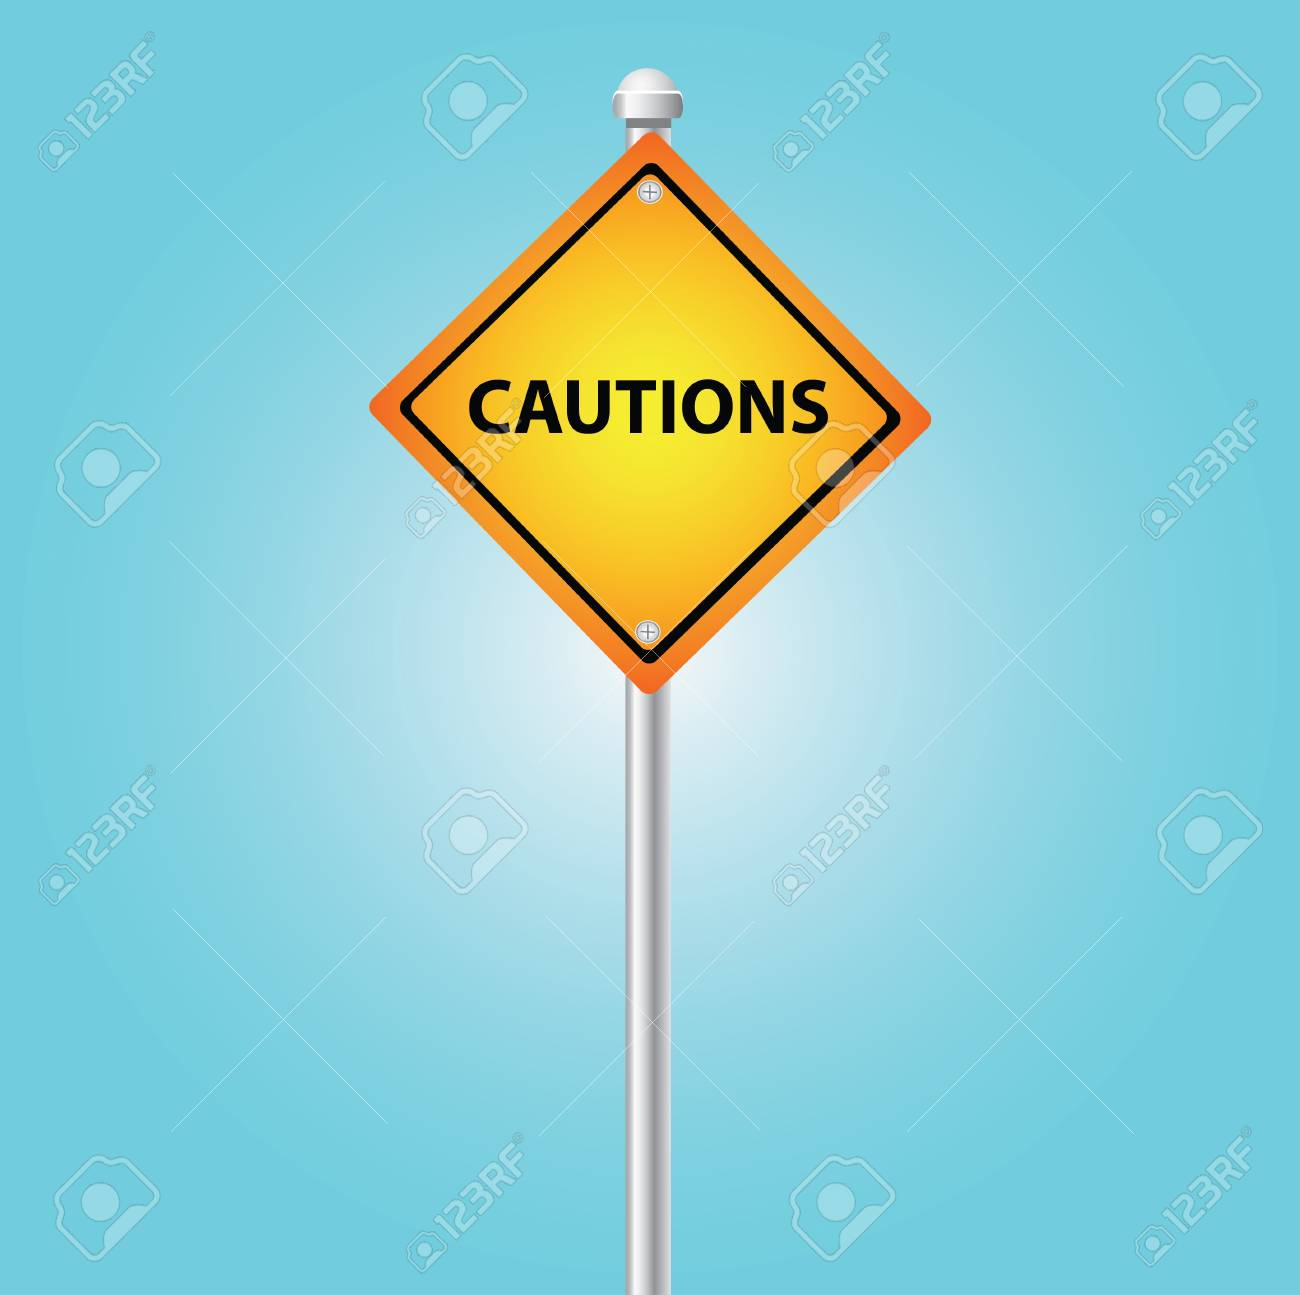 Cautions sign sky background,Vector Stock Vector - 14958556